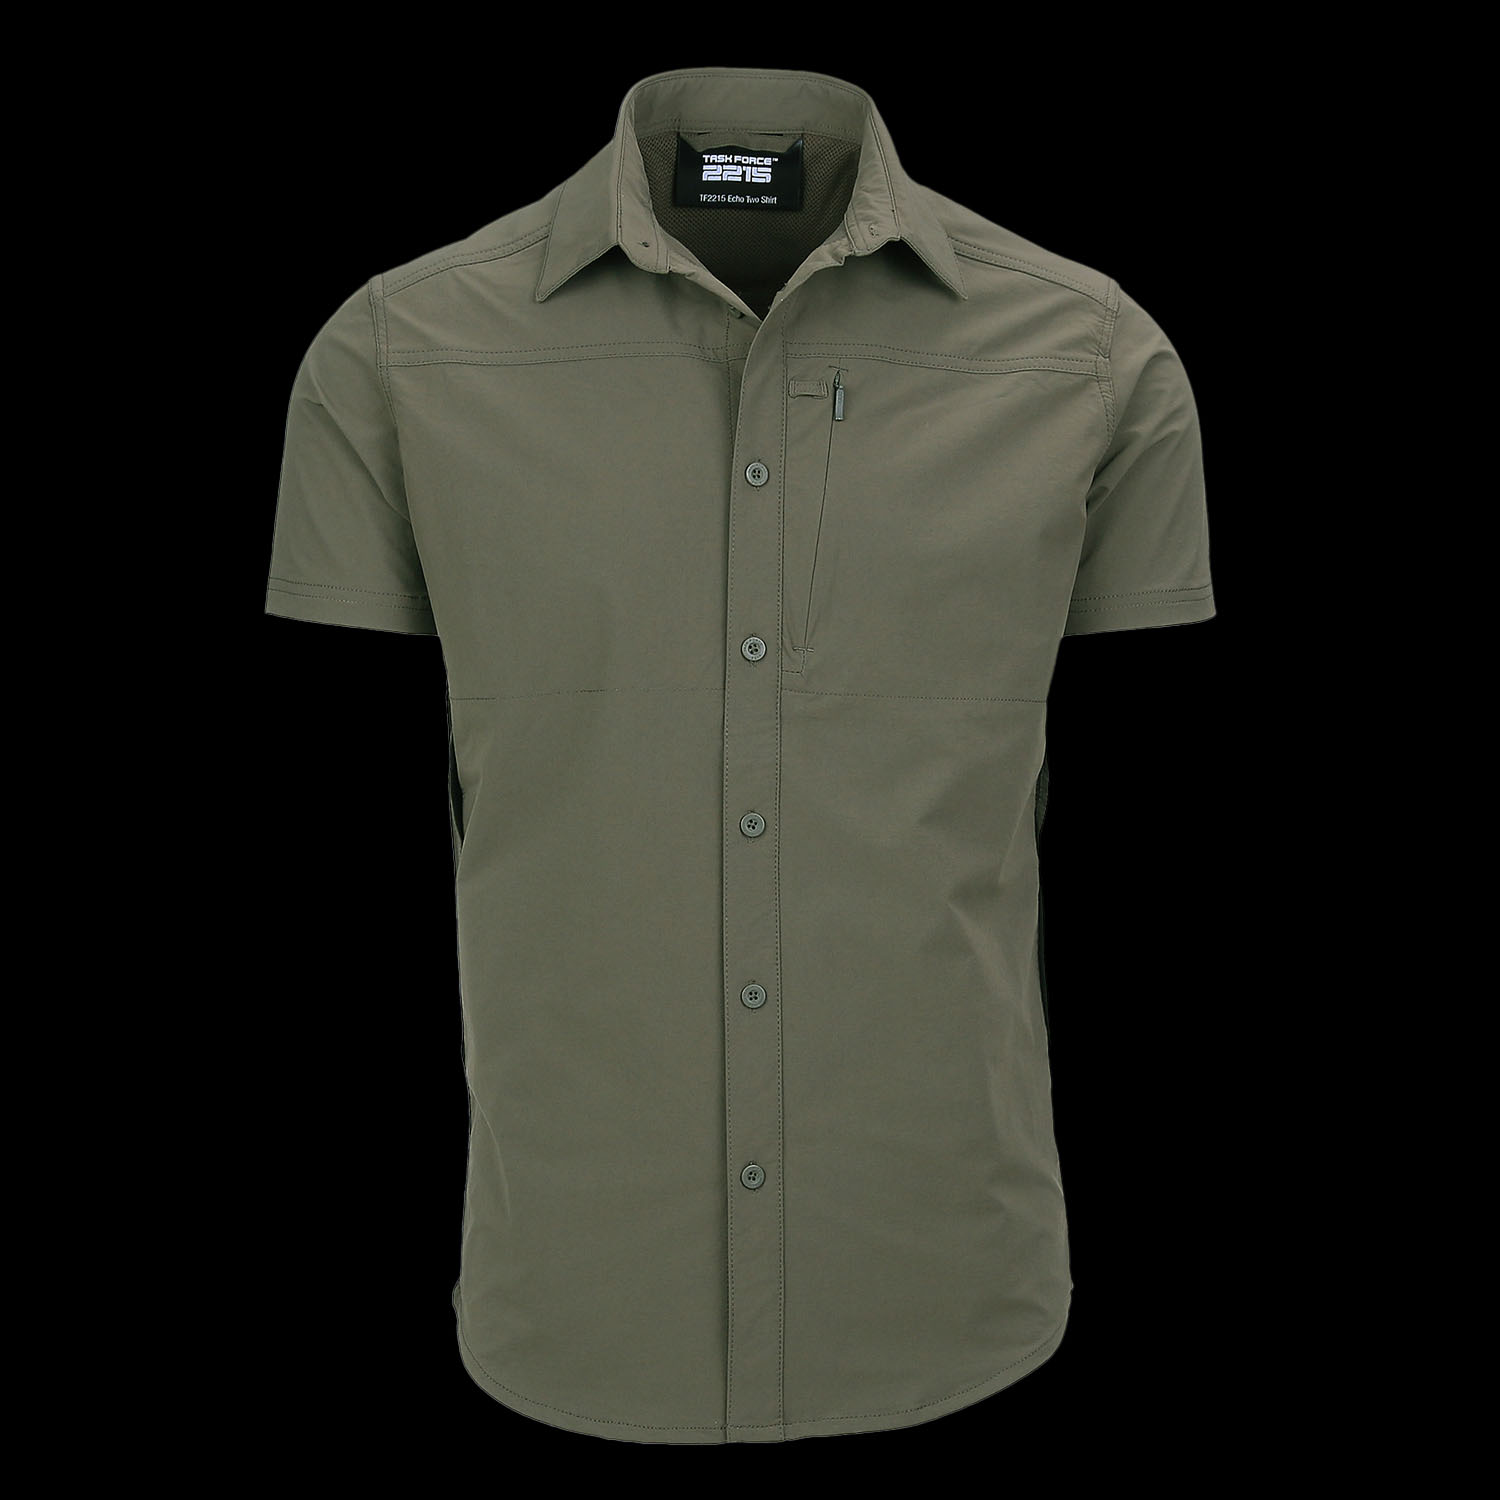 TF-2215 Echo Two Shirt Ranger Green